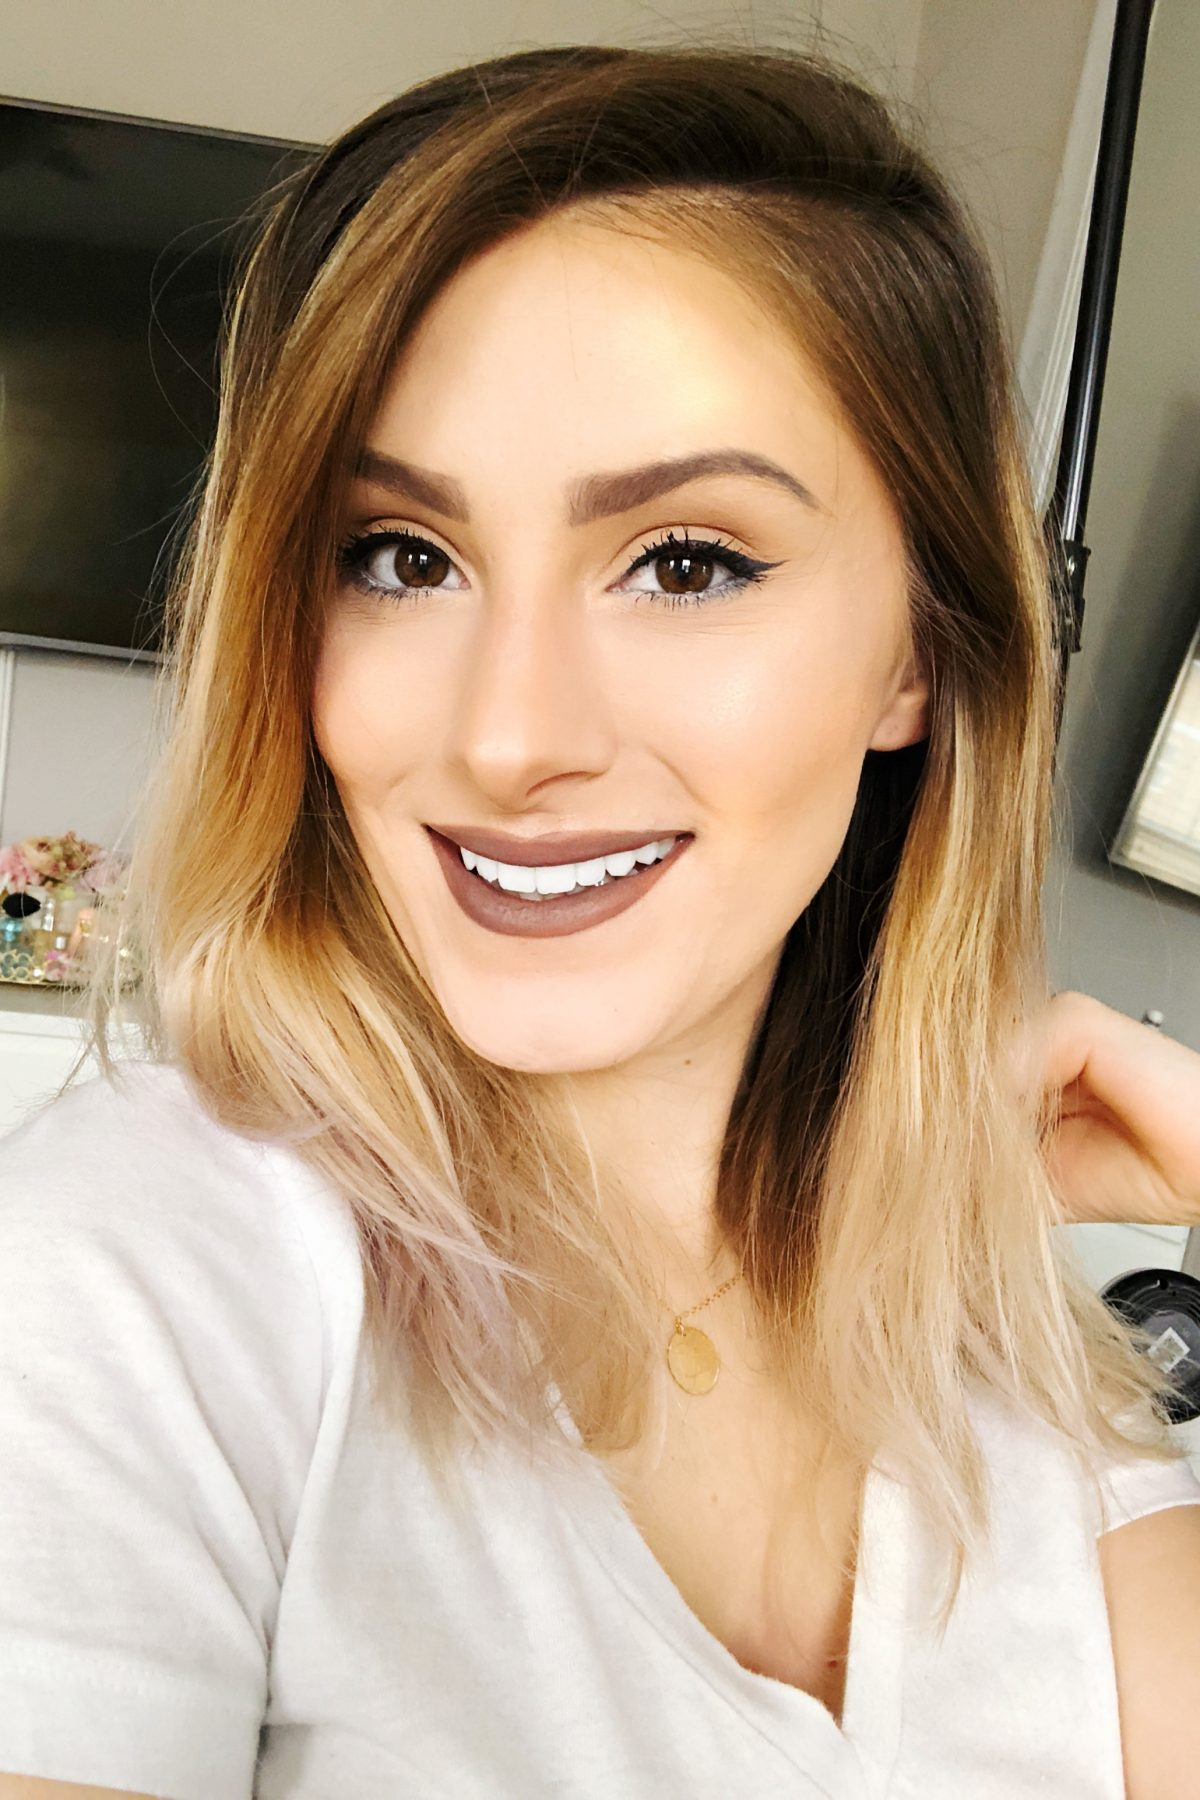 North Carolina fashion beauty and lifestyle blogger and vlogger Jessica Linn in a Youtube video review and demonstration of Carbon Coco The Ultimate Carbon Kit all natural organic activate charcoal teeth whitening